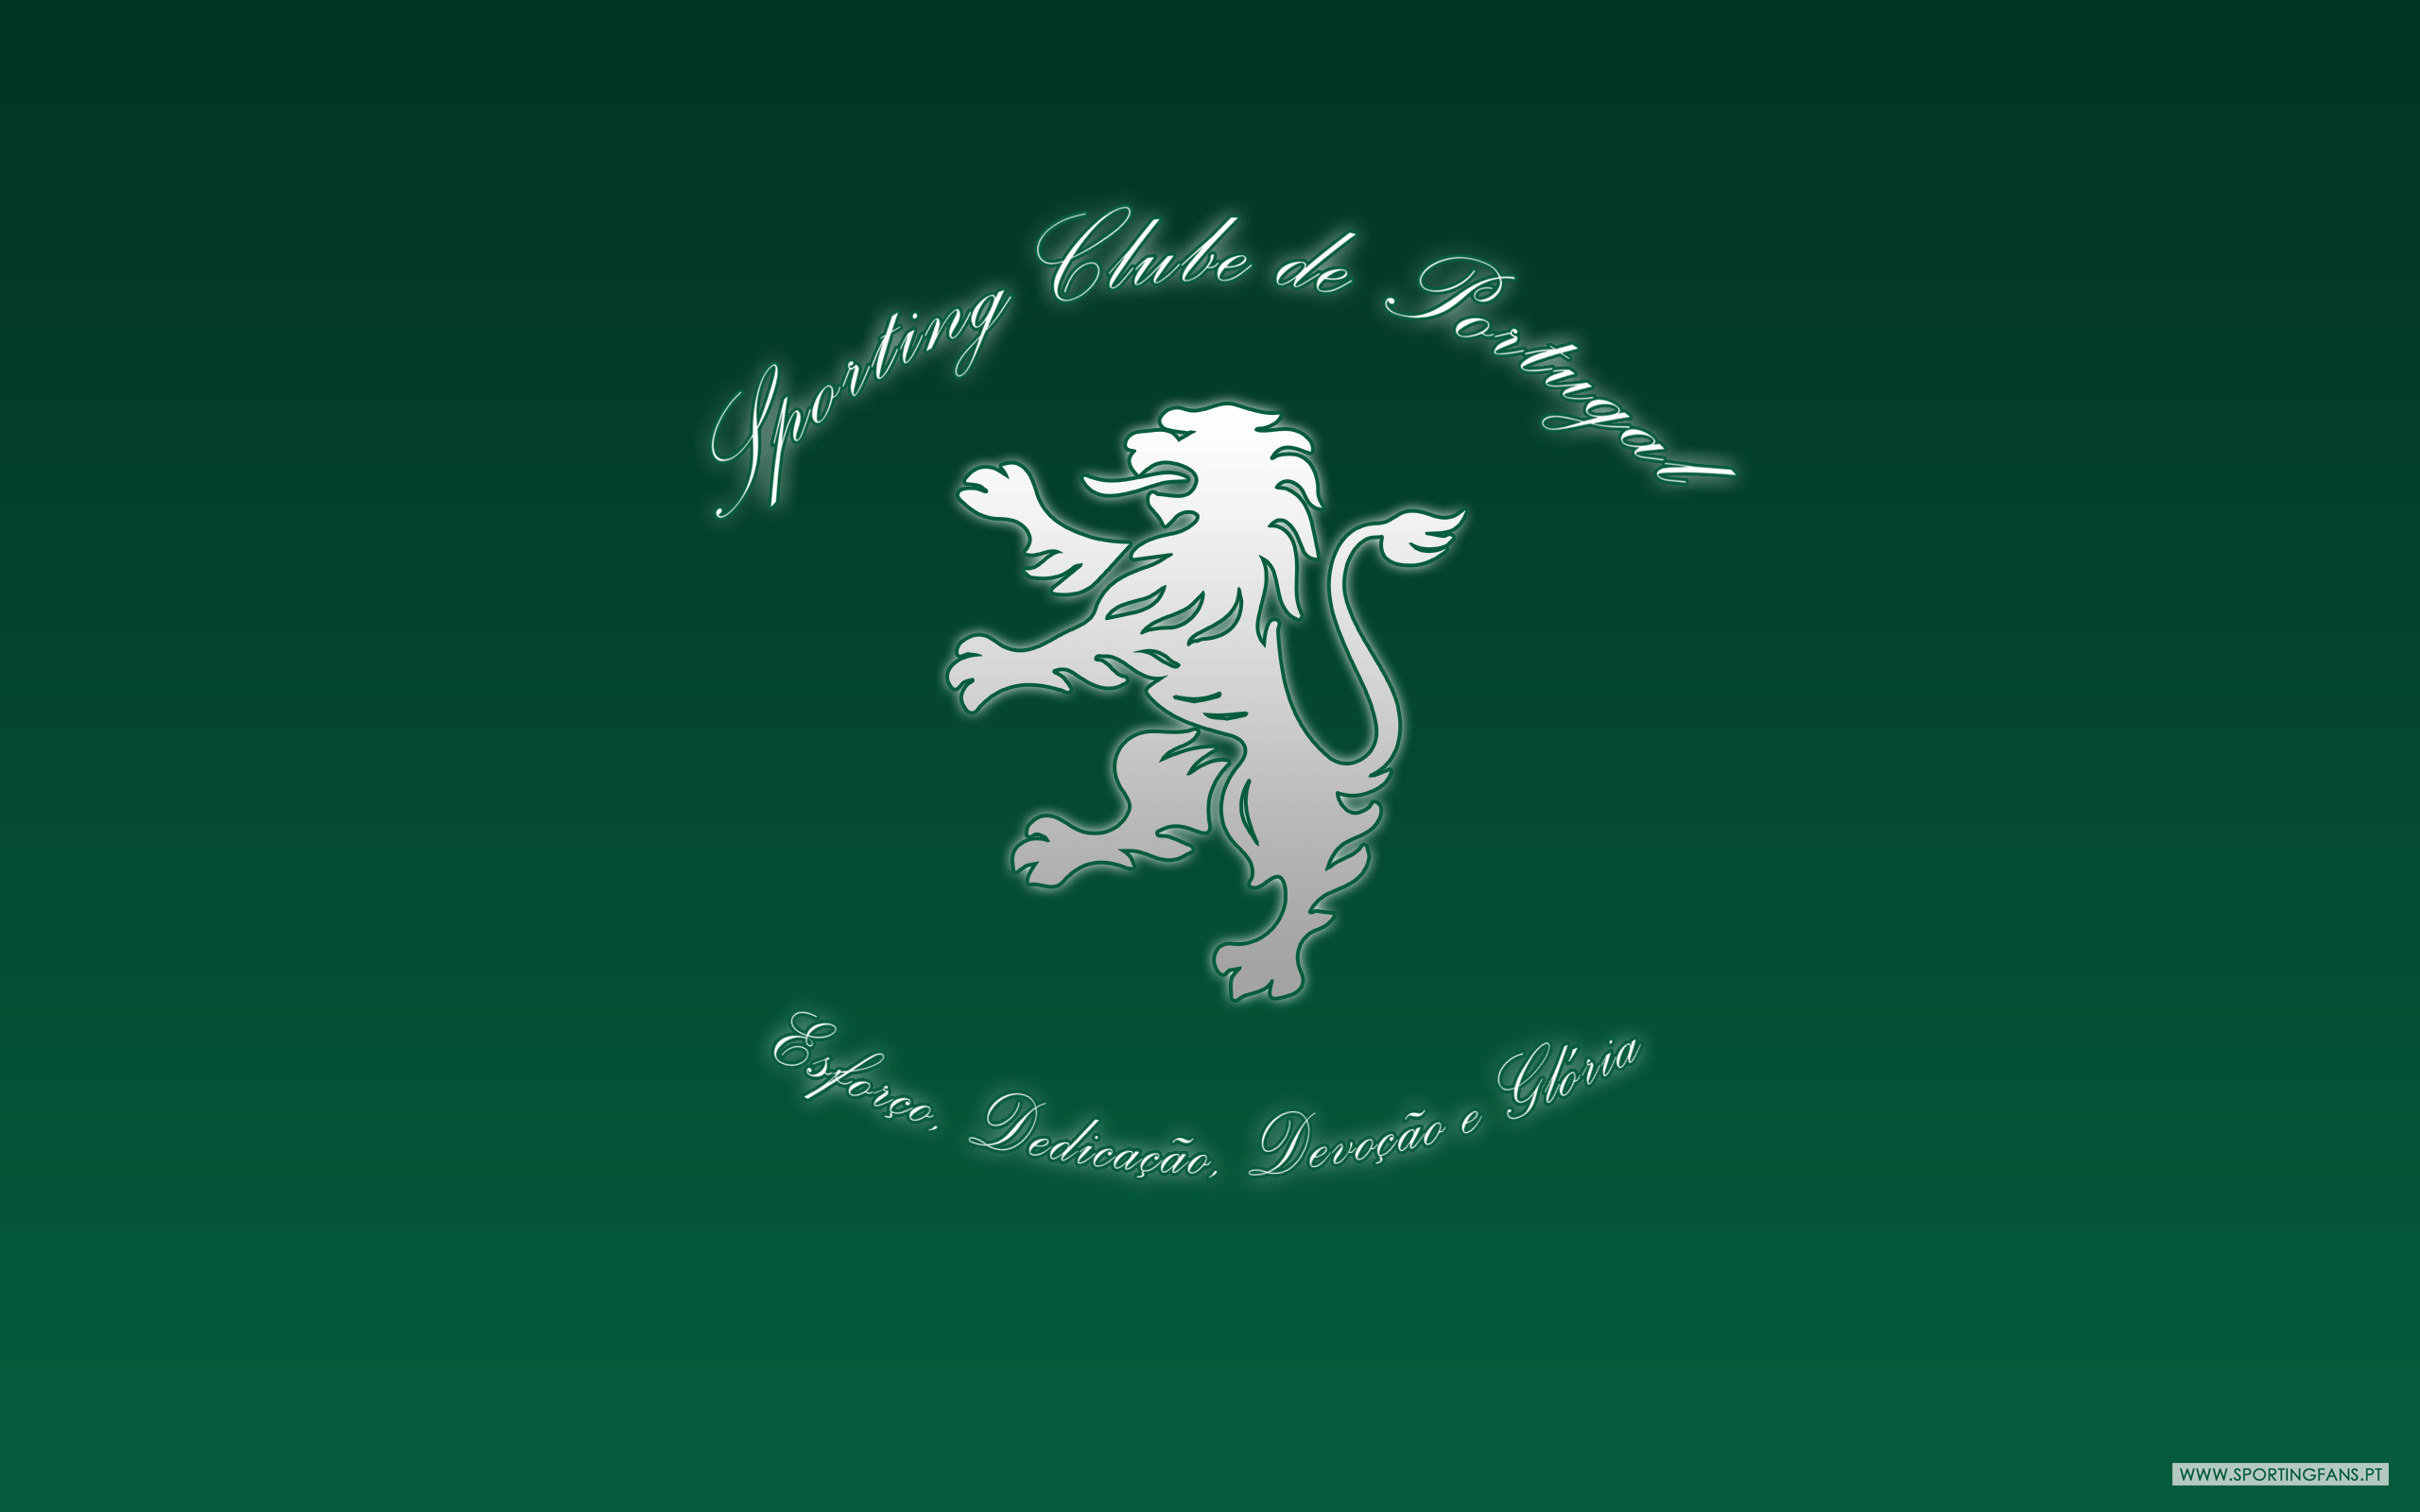 Sporting CP Wallpapers - Wallpaper Cave